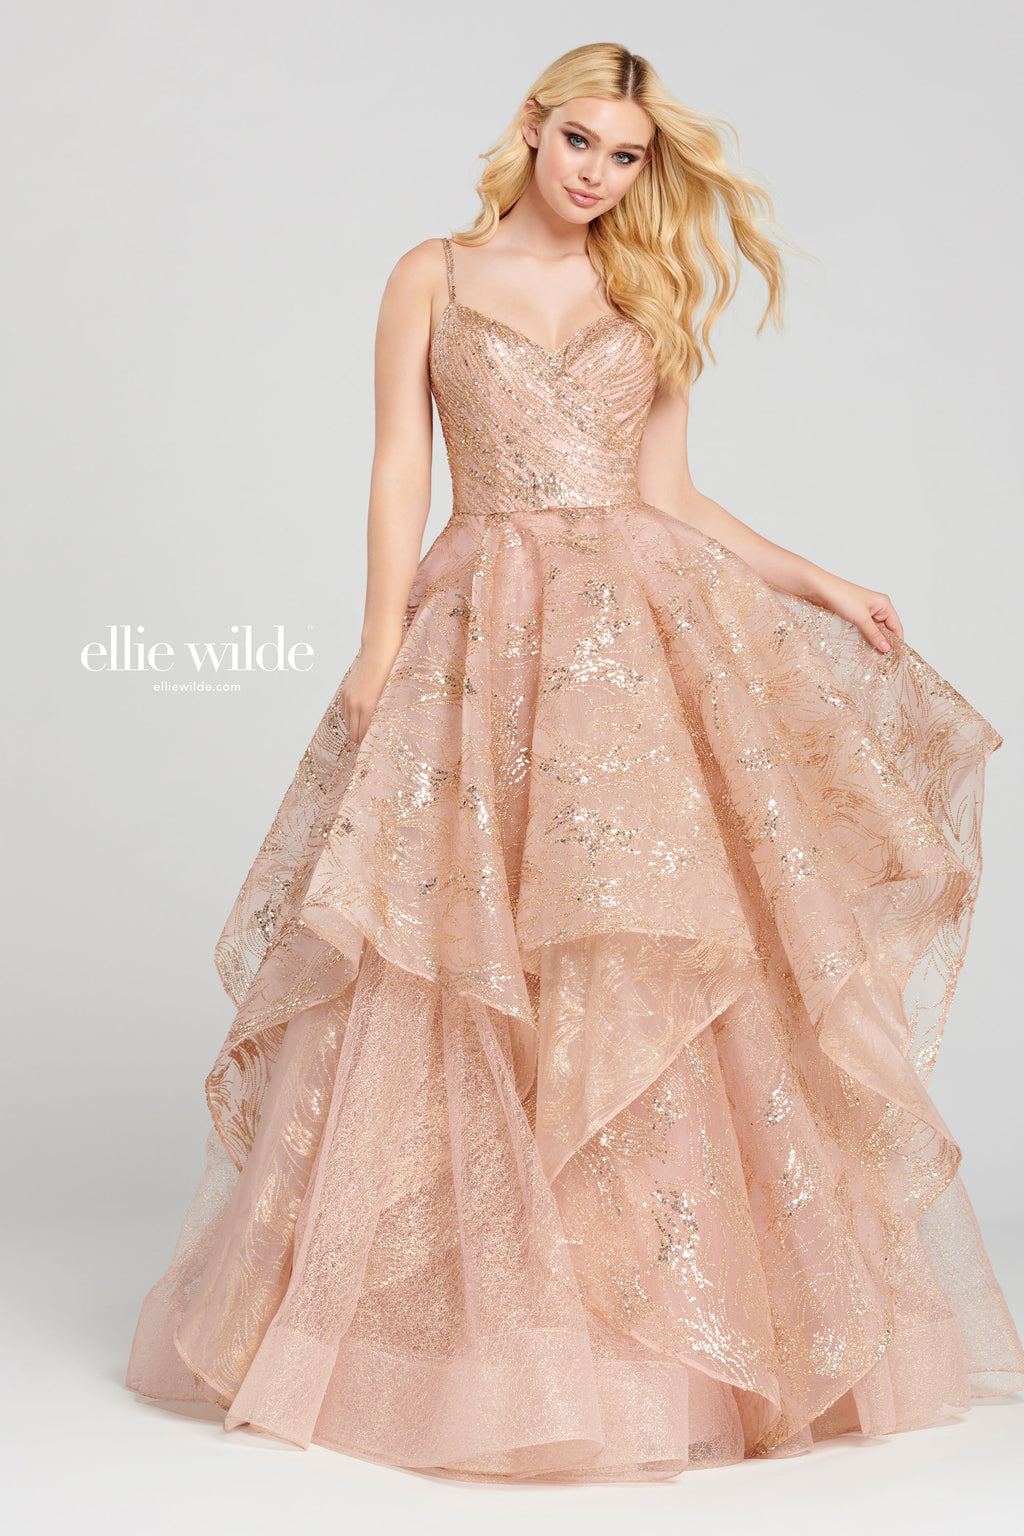 Ellie Wilde Rose Gold Ball Gown